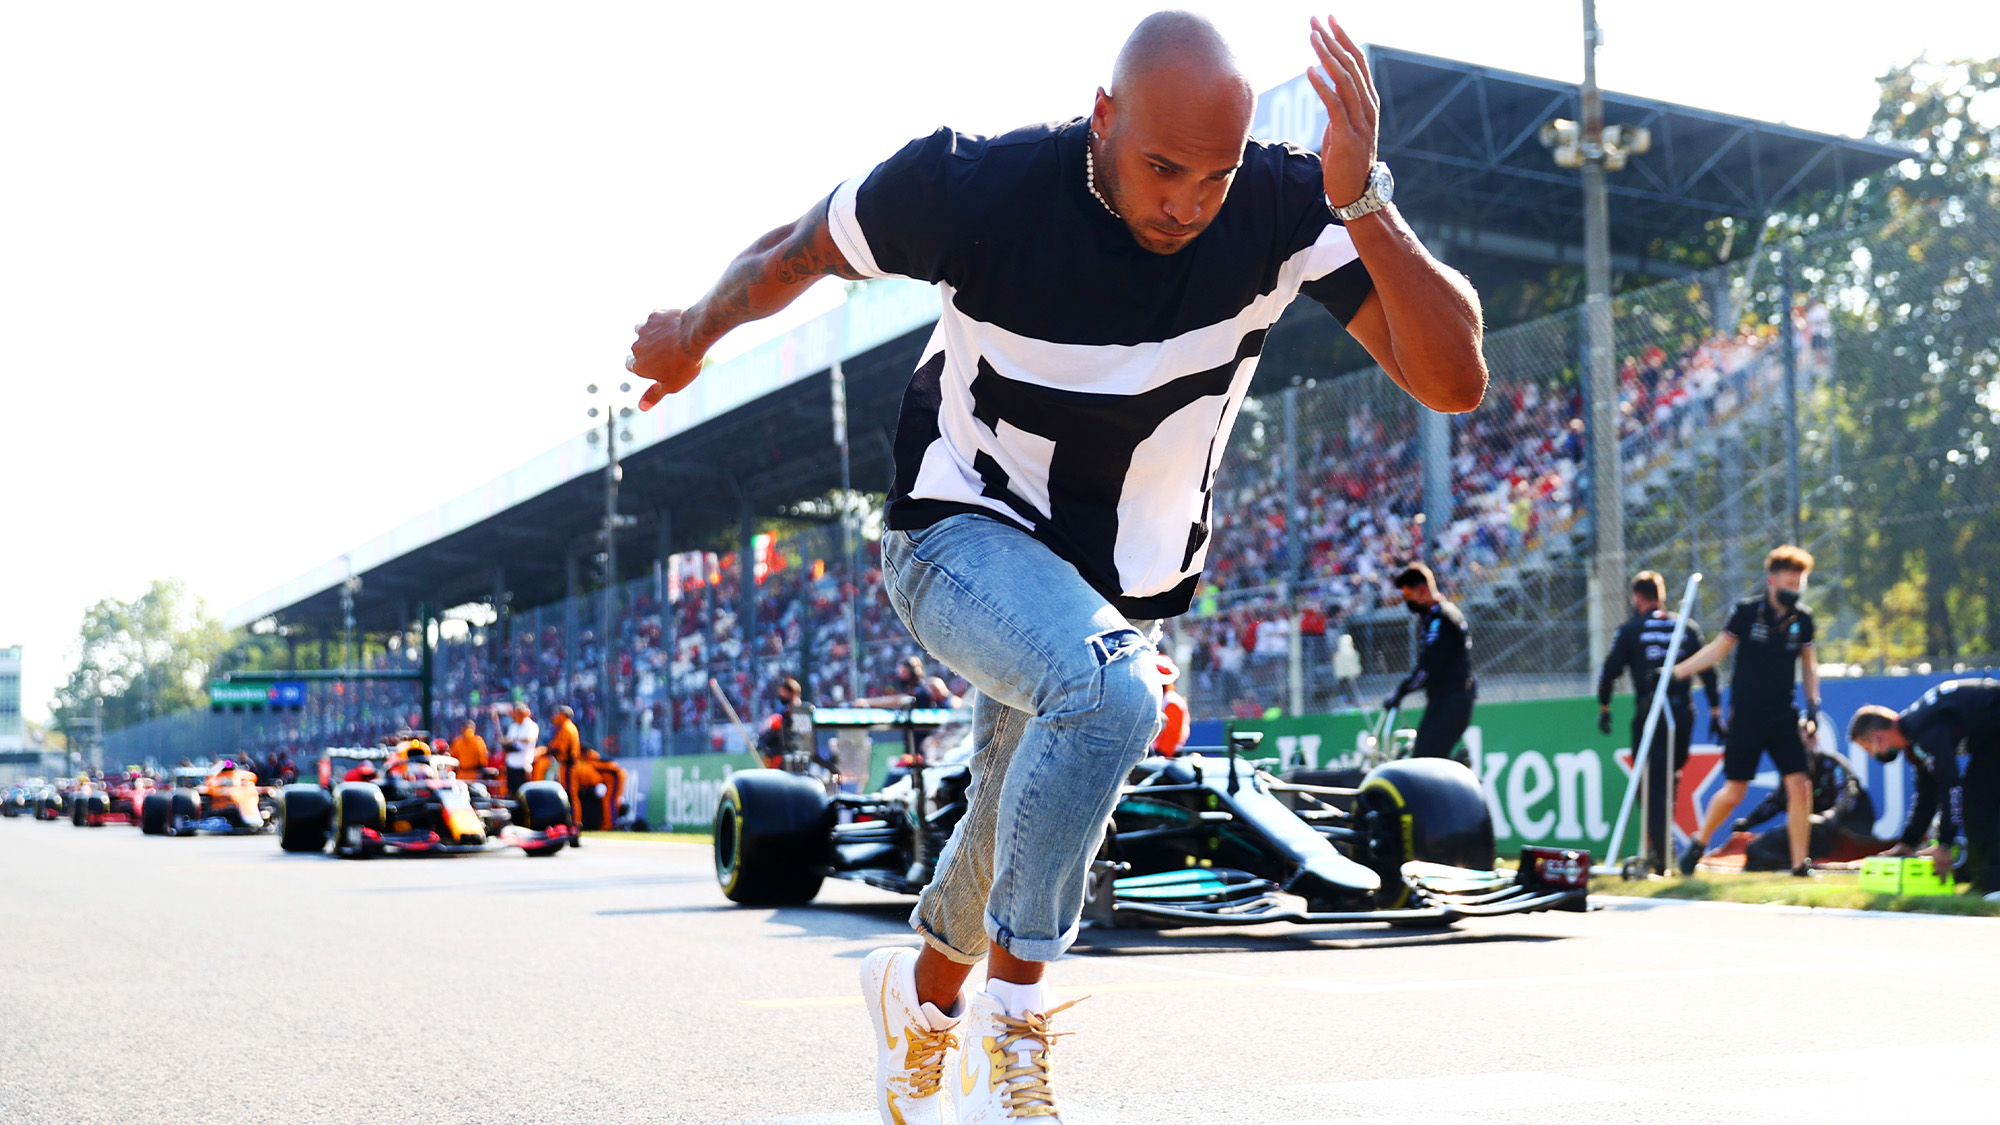 Lamont Marcell Jacobs runs om the F1 grid ahead of Monza sprint qualifying